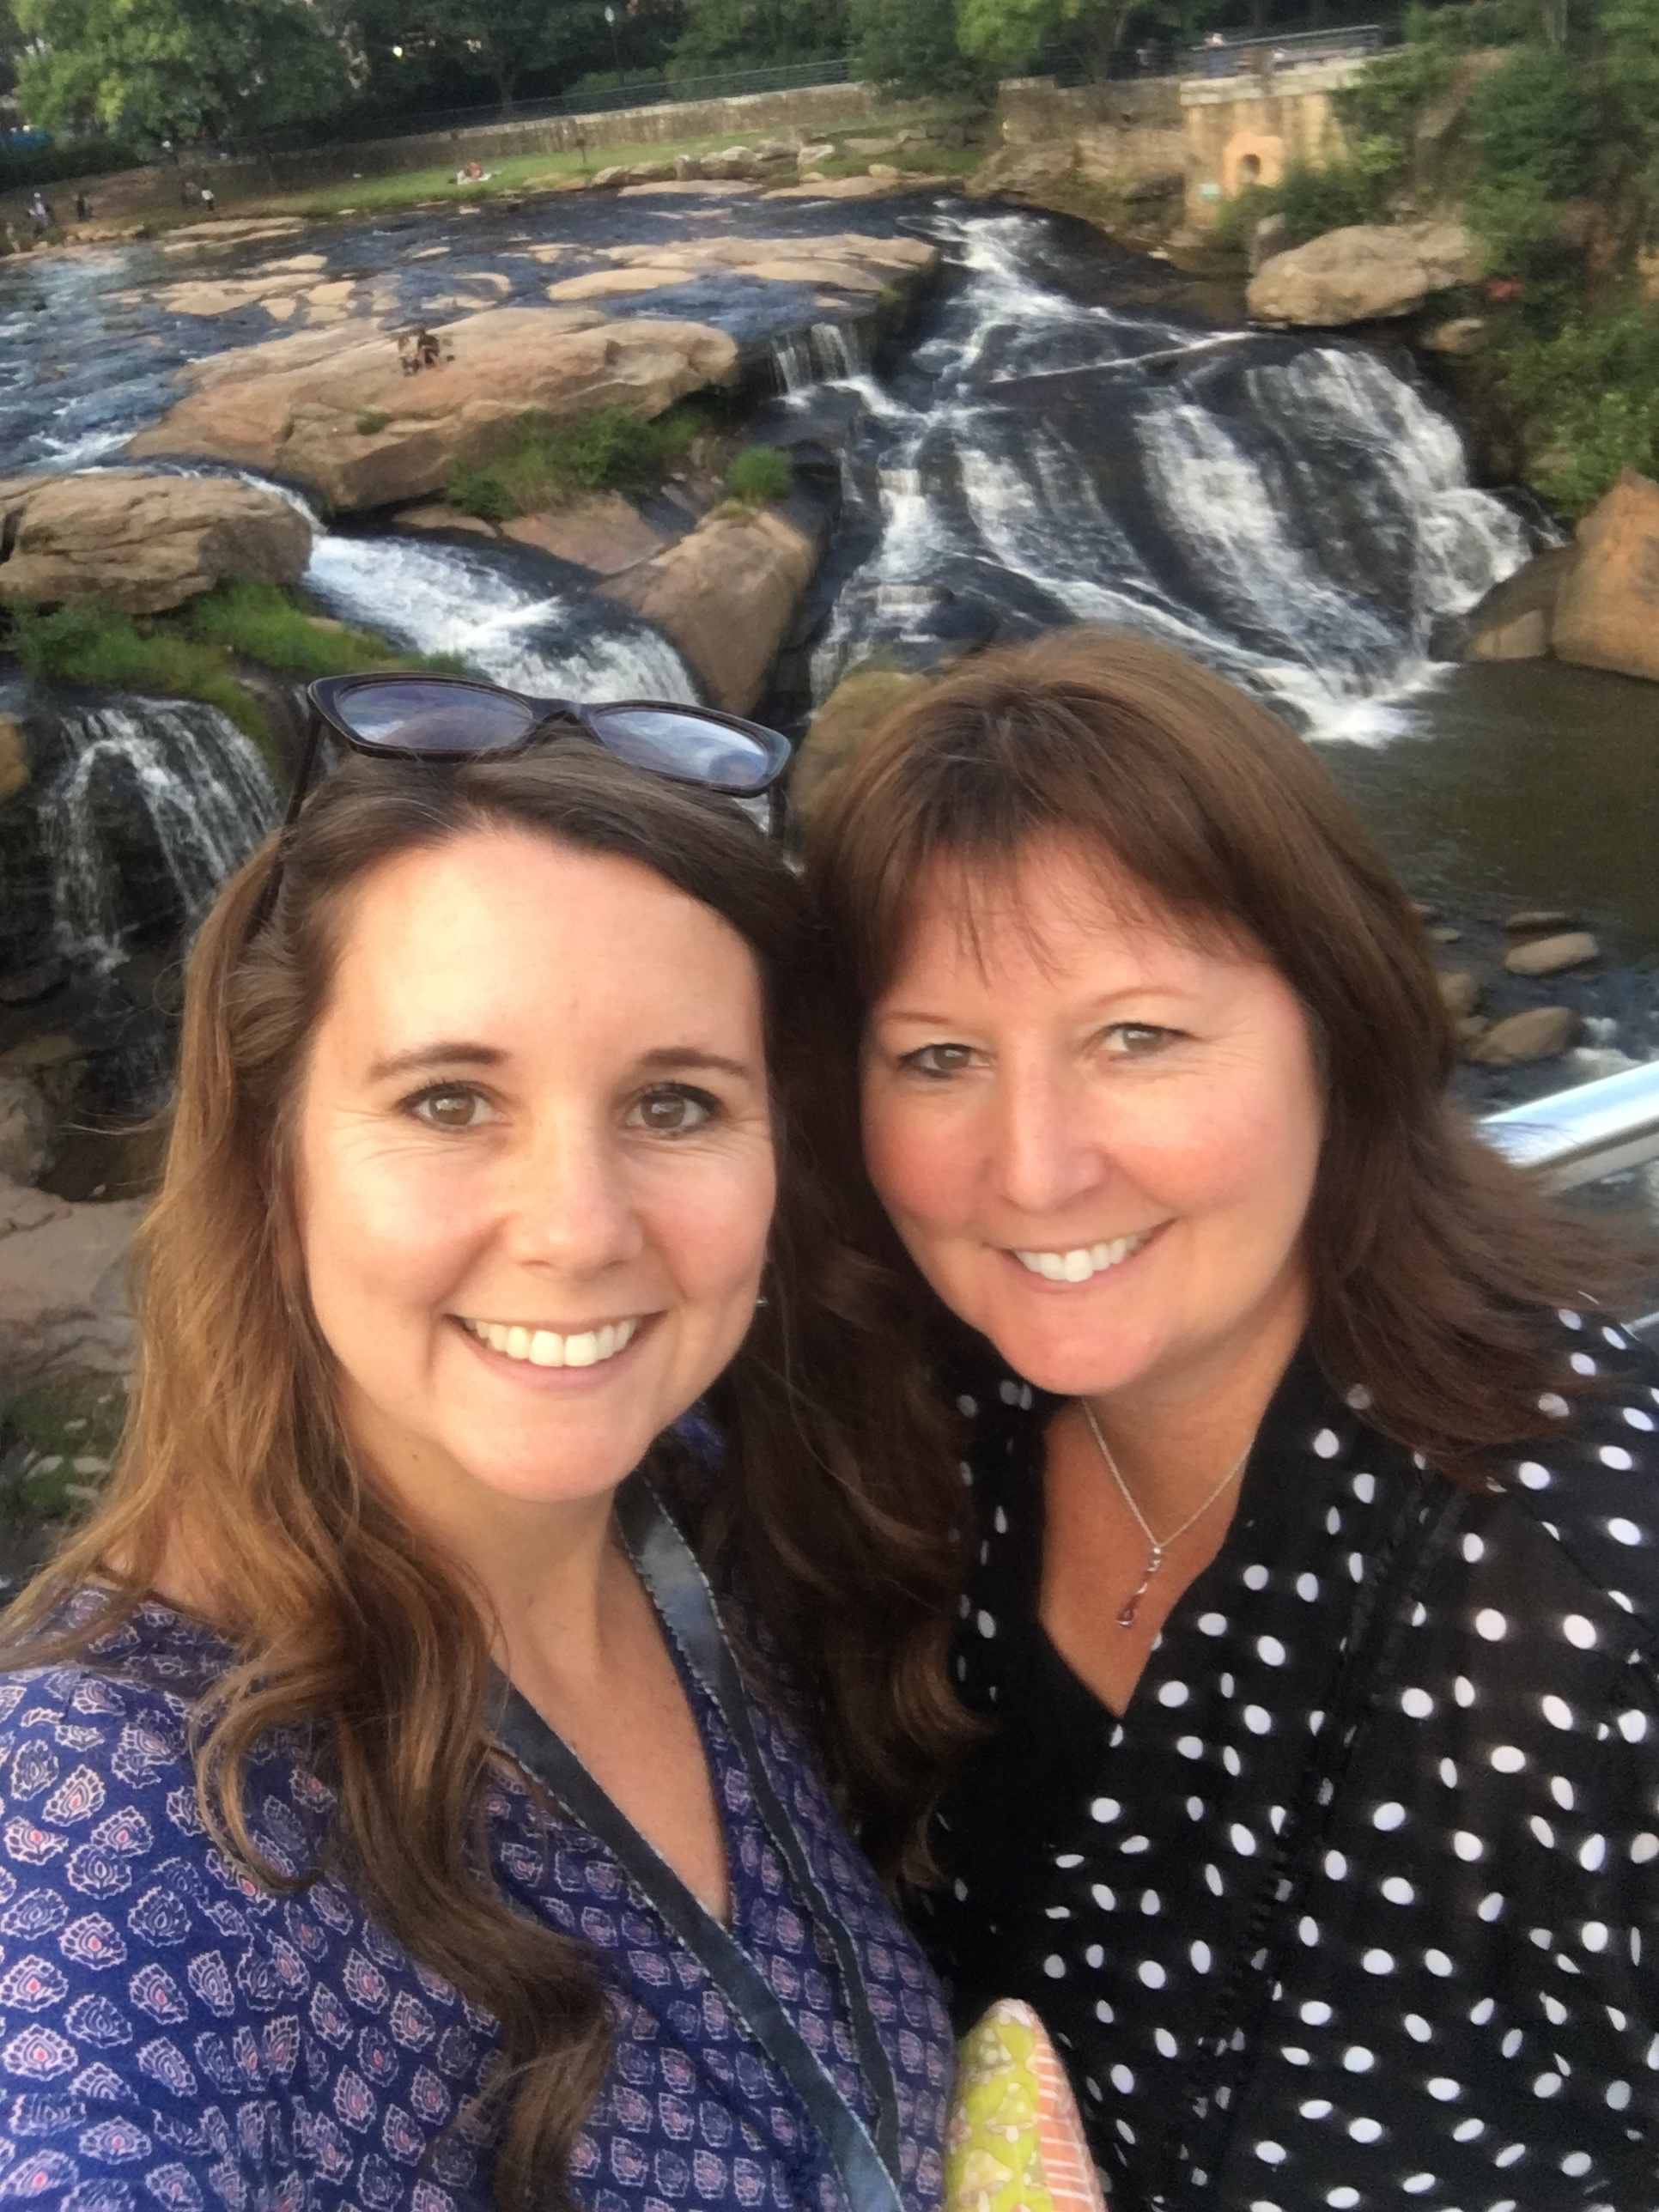 This is my sister Michelle and I. We flew into Greenville, South Carolina and then drove an hour and a half to Black Mountain, North Carolina. We lived in South Carolina when we were younger (Navy kids), and enjoyed exploring in downtown Greenville.